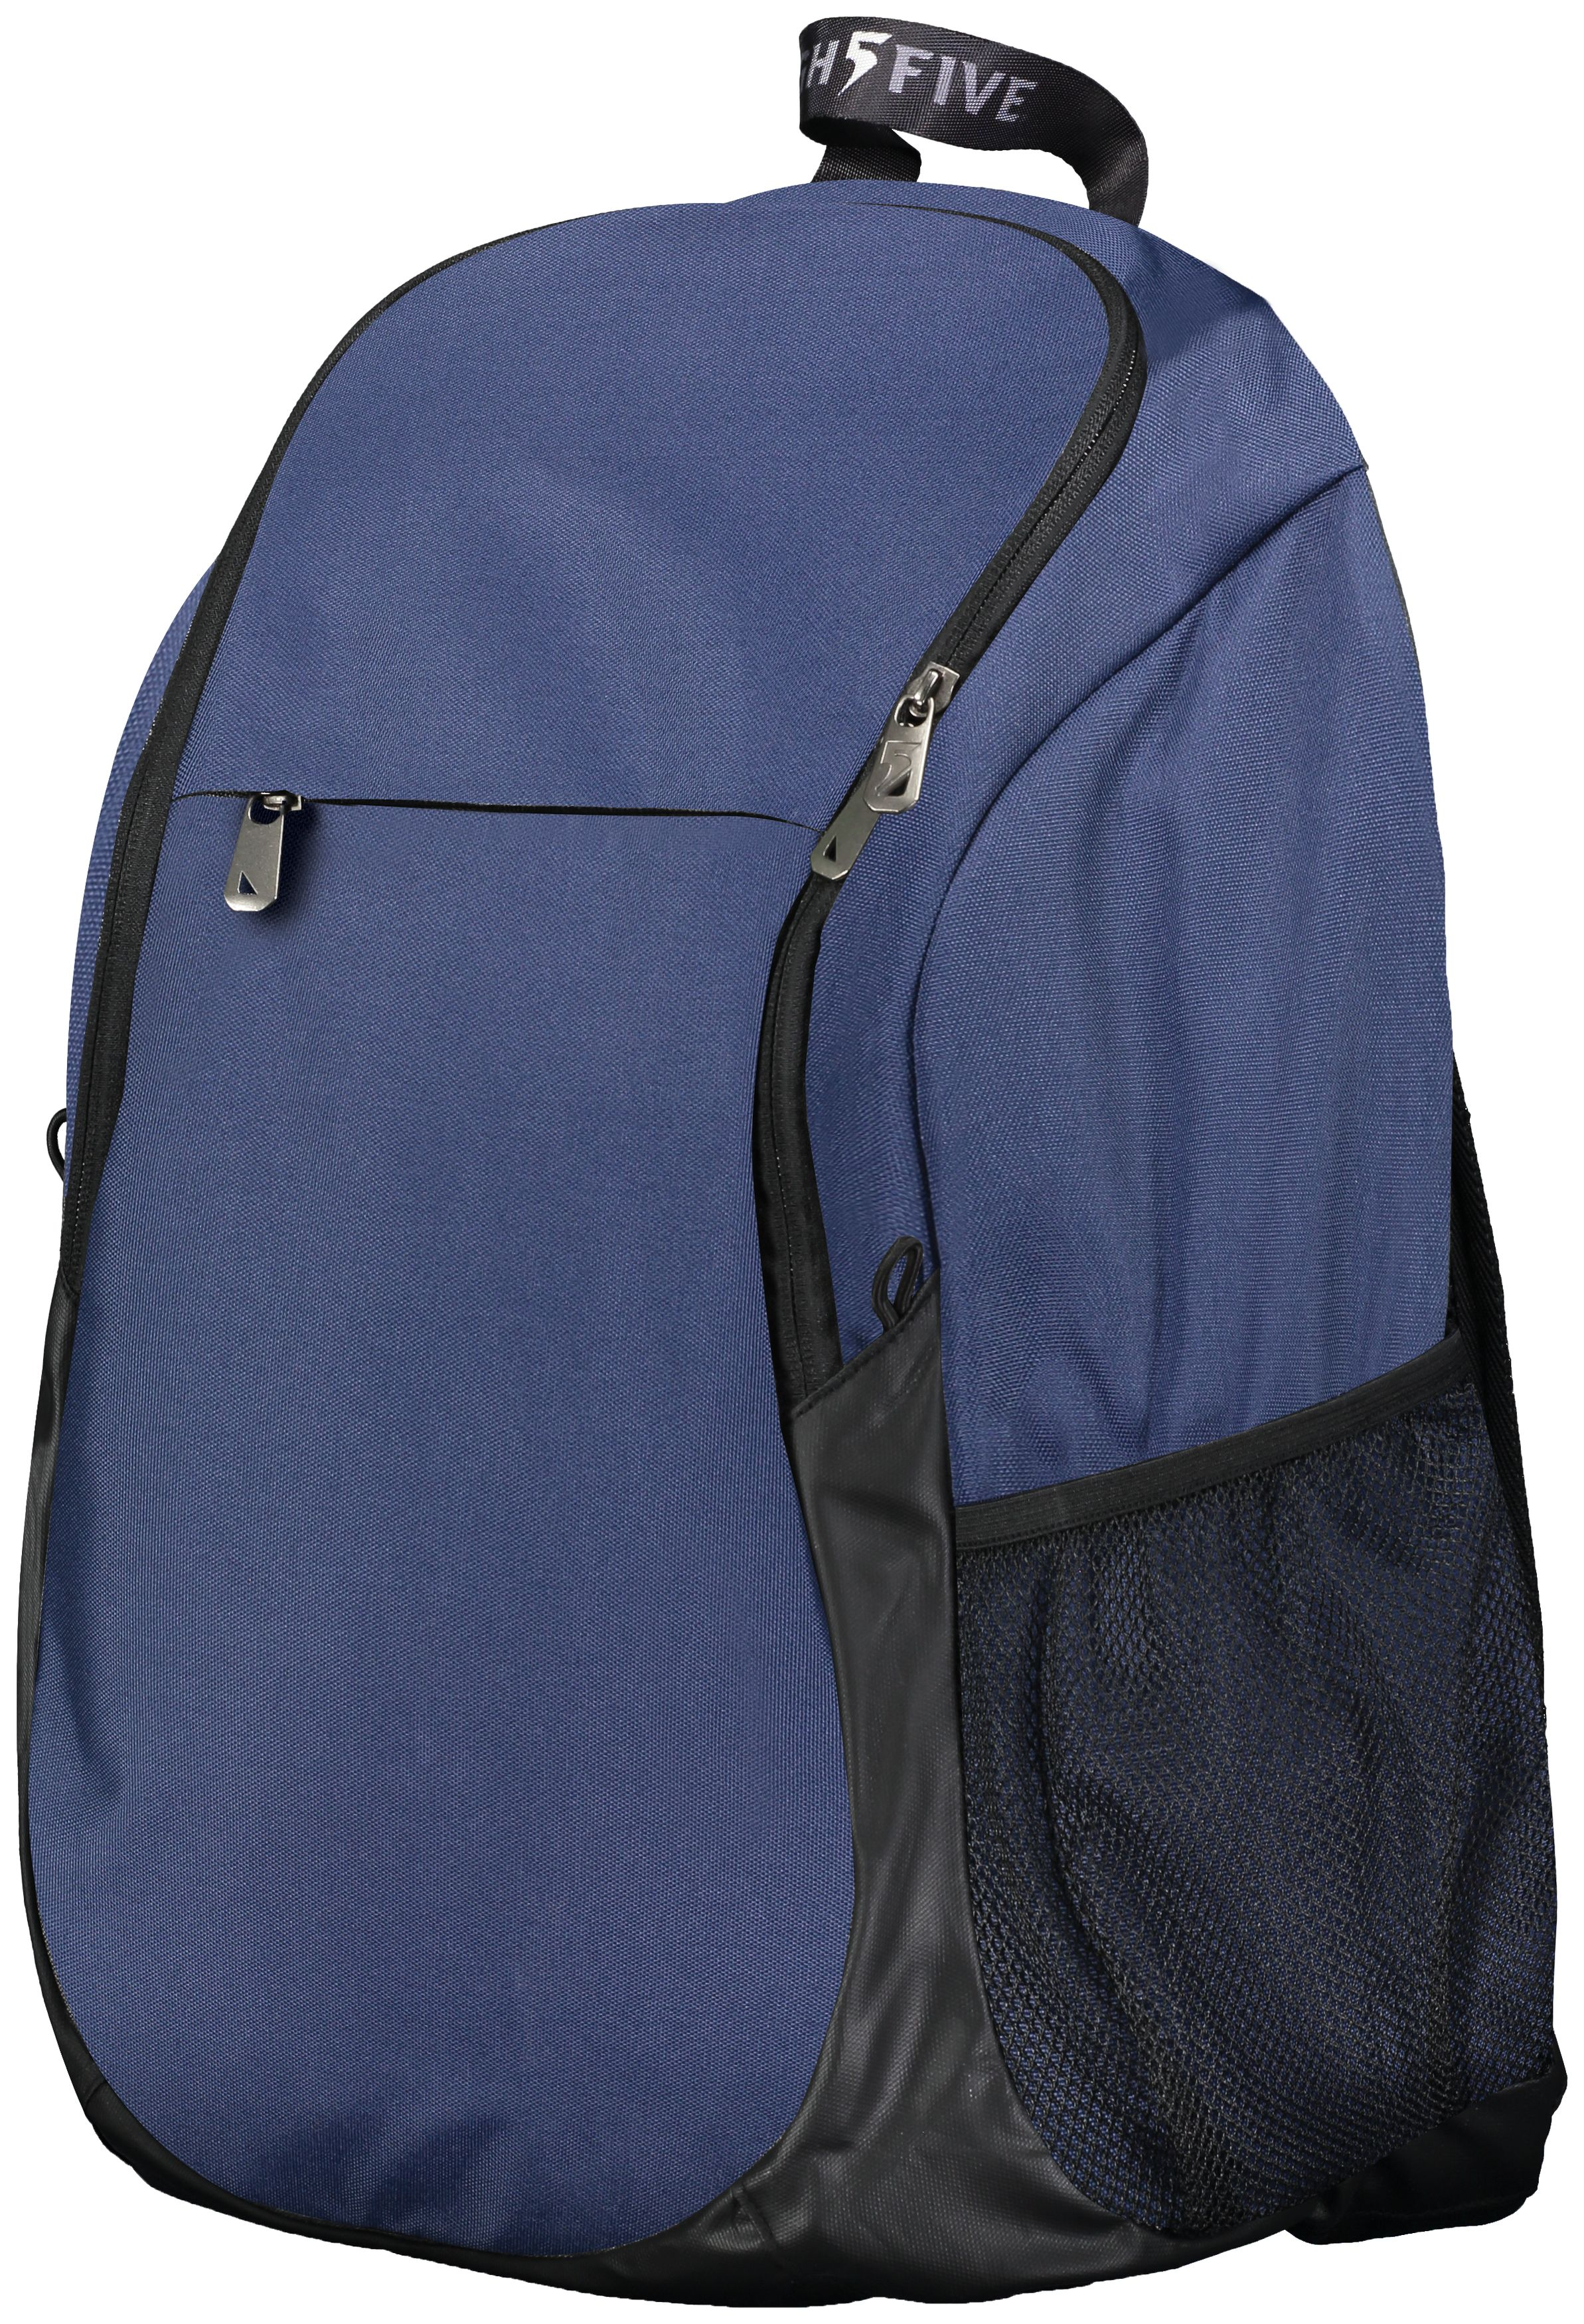 Free Form Backpack - NAVY